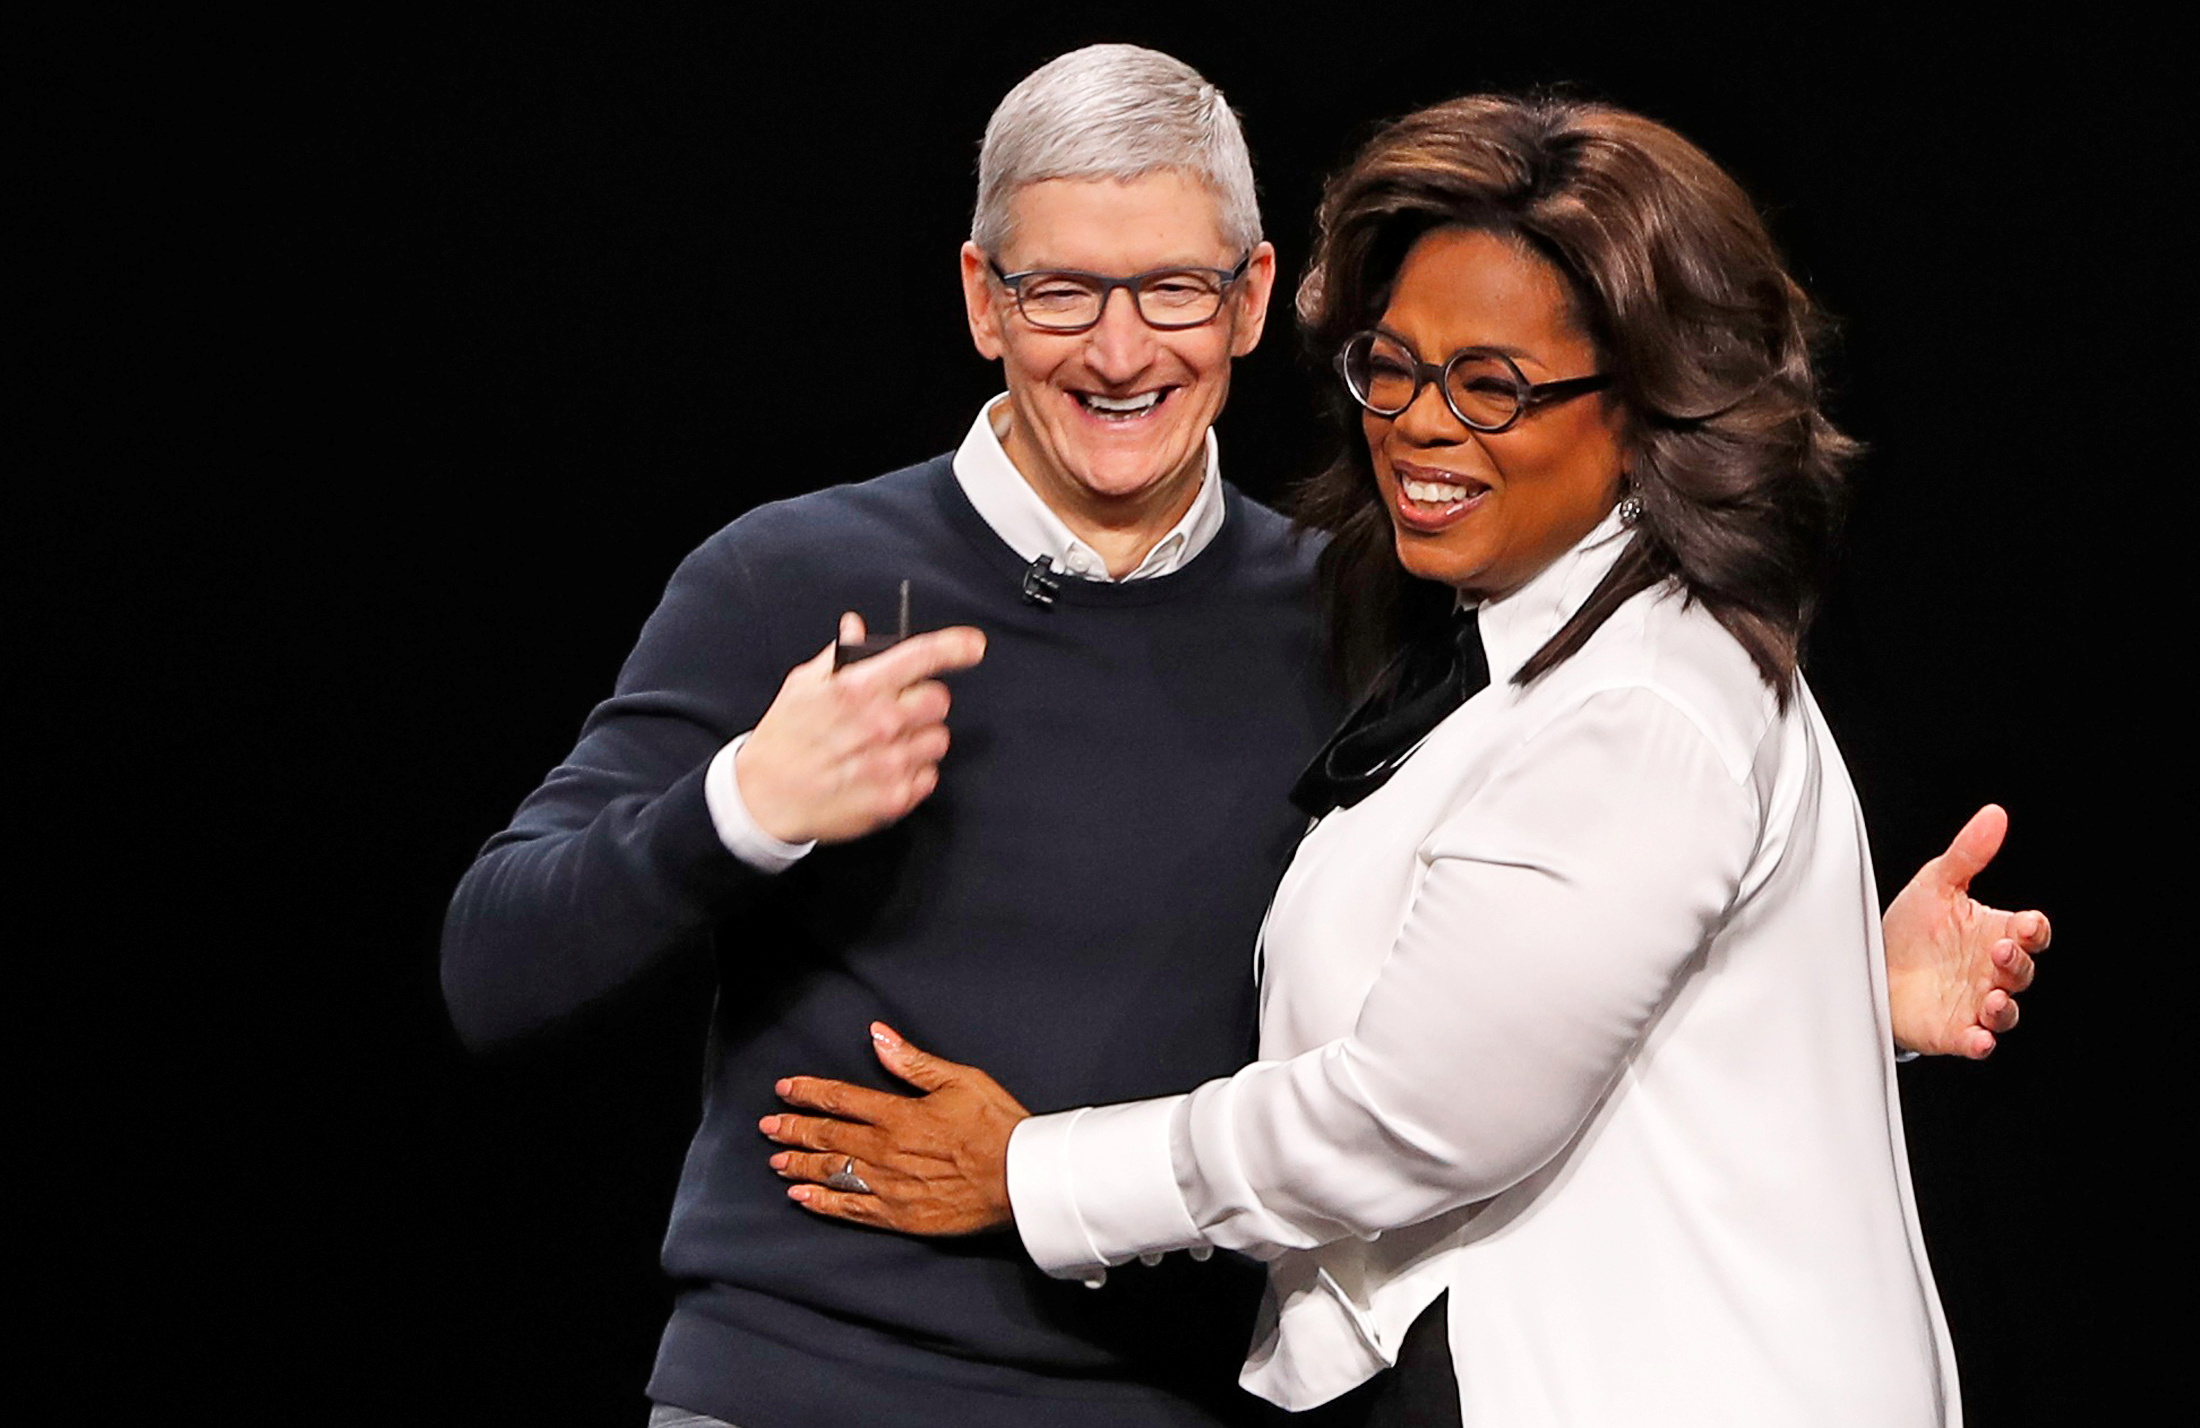 Tim Cook, CEO of Apple and Oprah Winfrey hug during an Apple special event at the Steve Jobs Theater in Cupertino